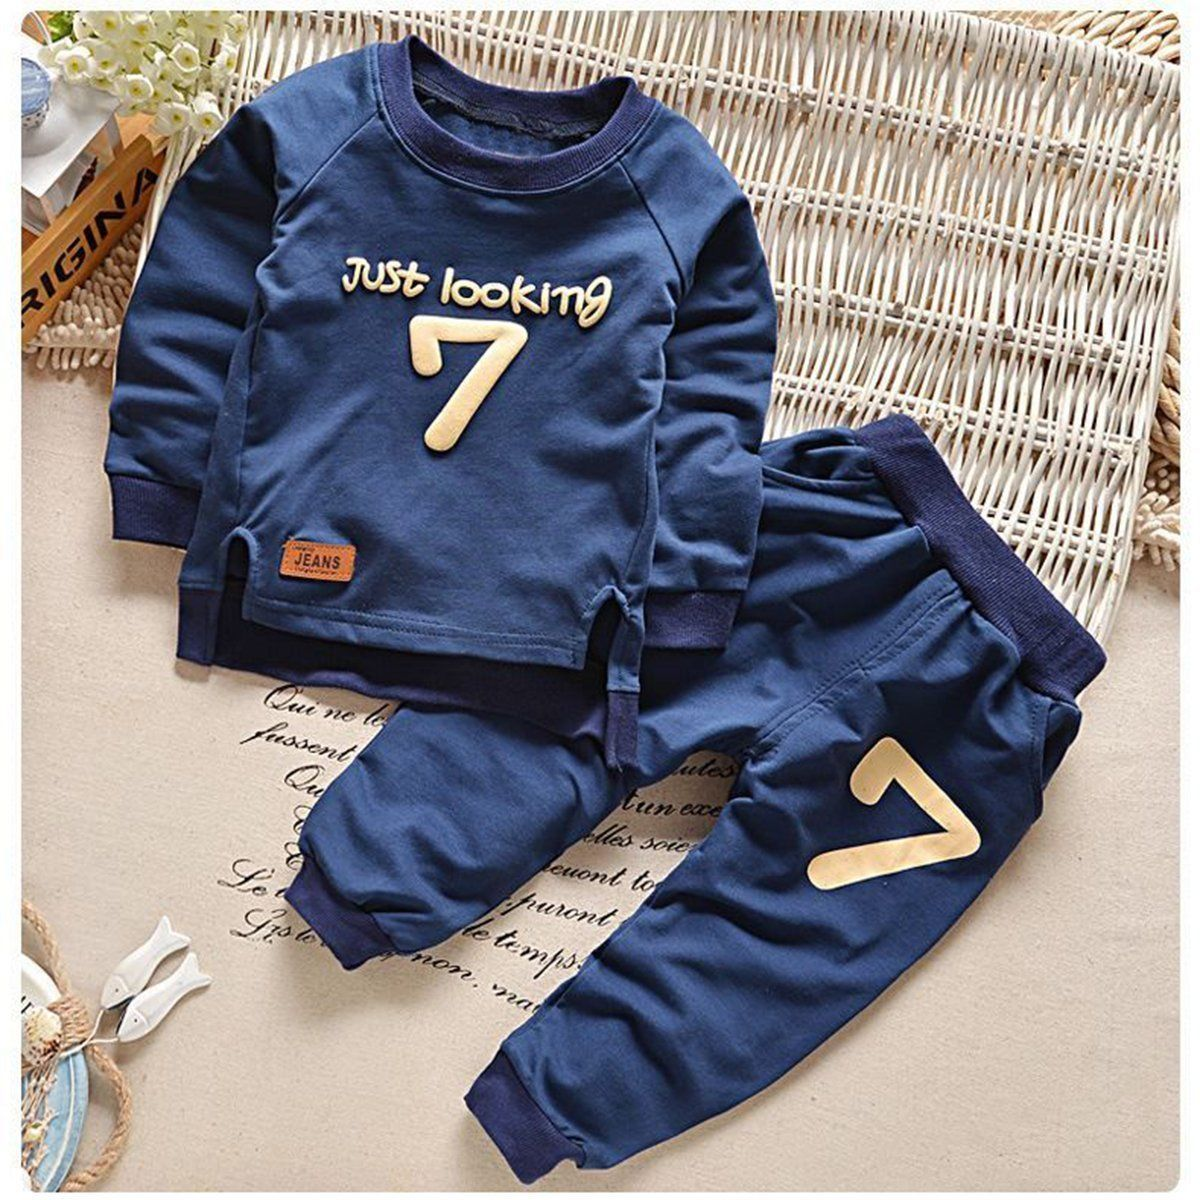 cc9f6726a Toddler Kids Baby Boy Girls Sweatshirt+Pants Sport Tracksuits Outfit ...